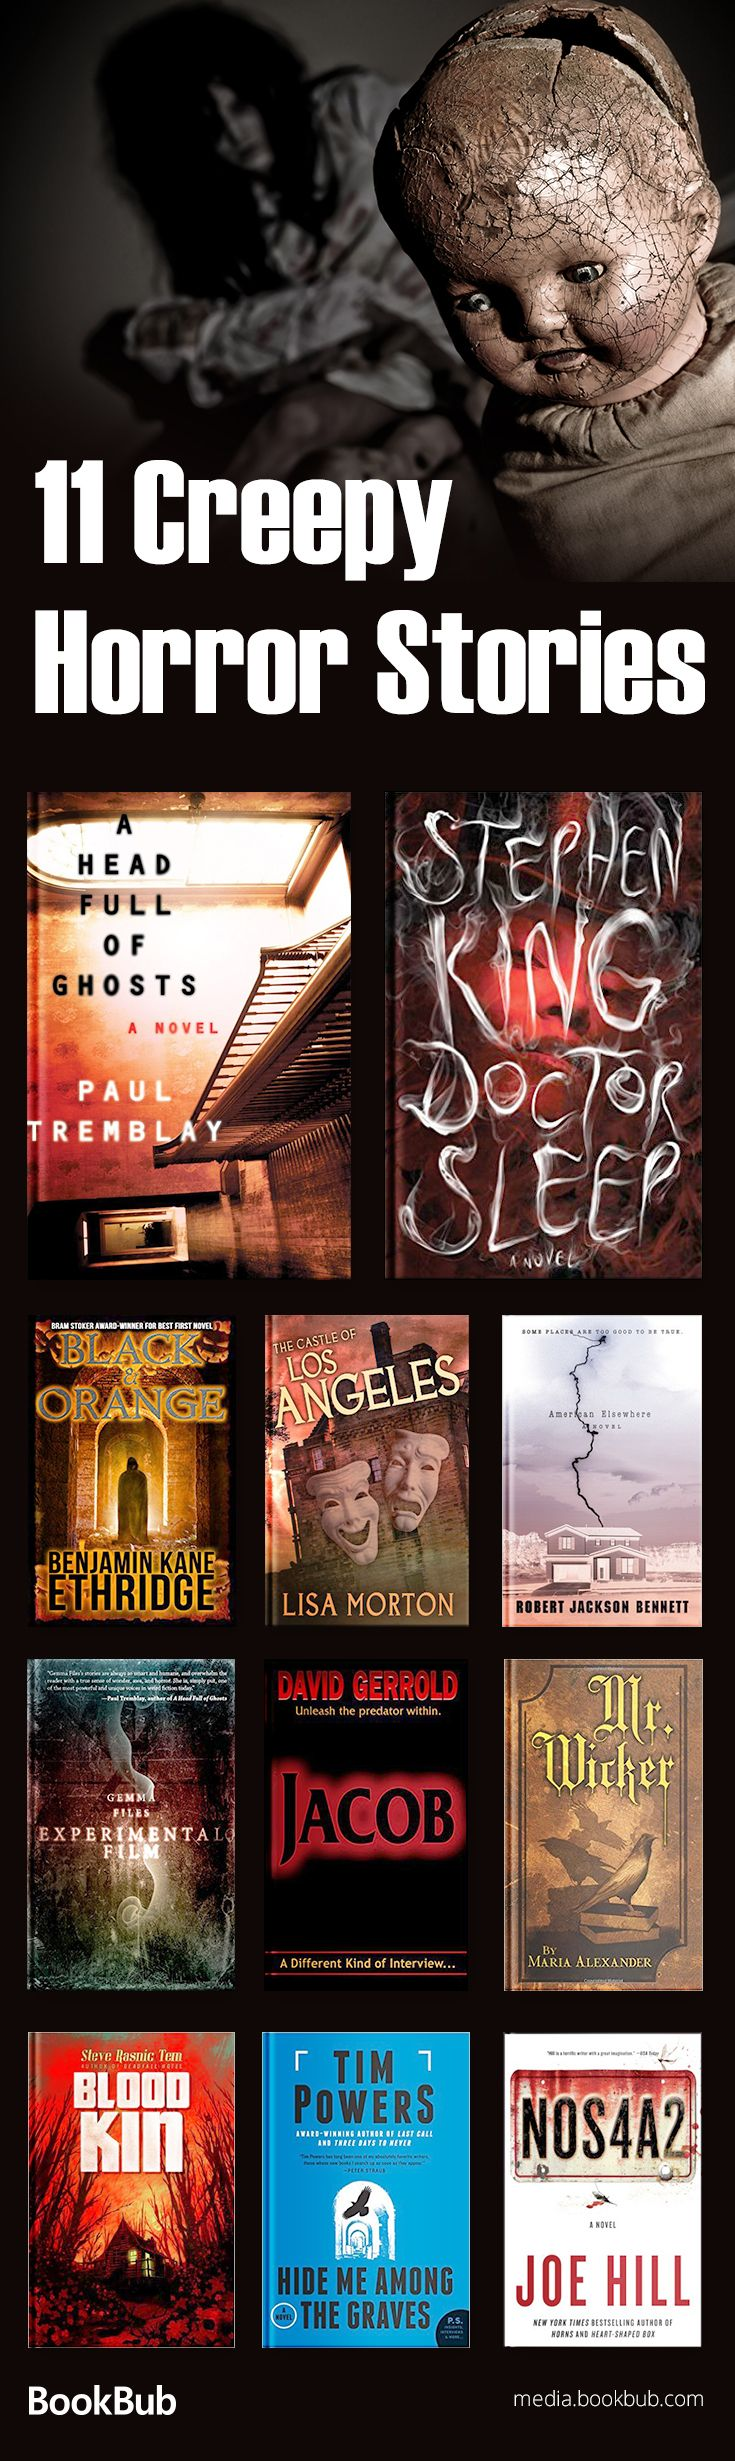 11 creepy horror stories and books to read for Halloween. These scary stories for adults include award-winning fiction.